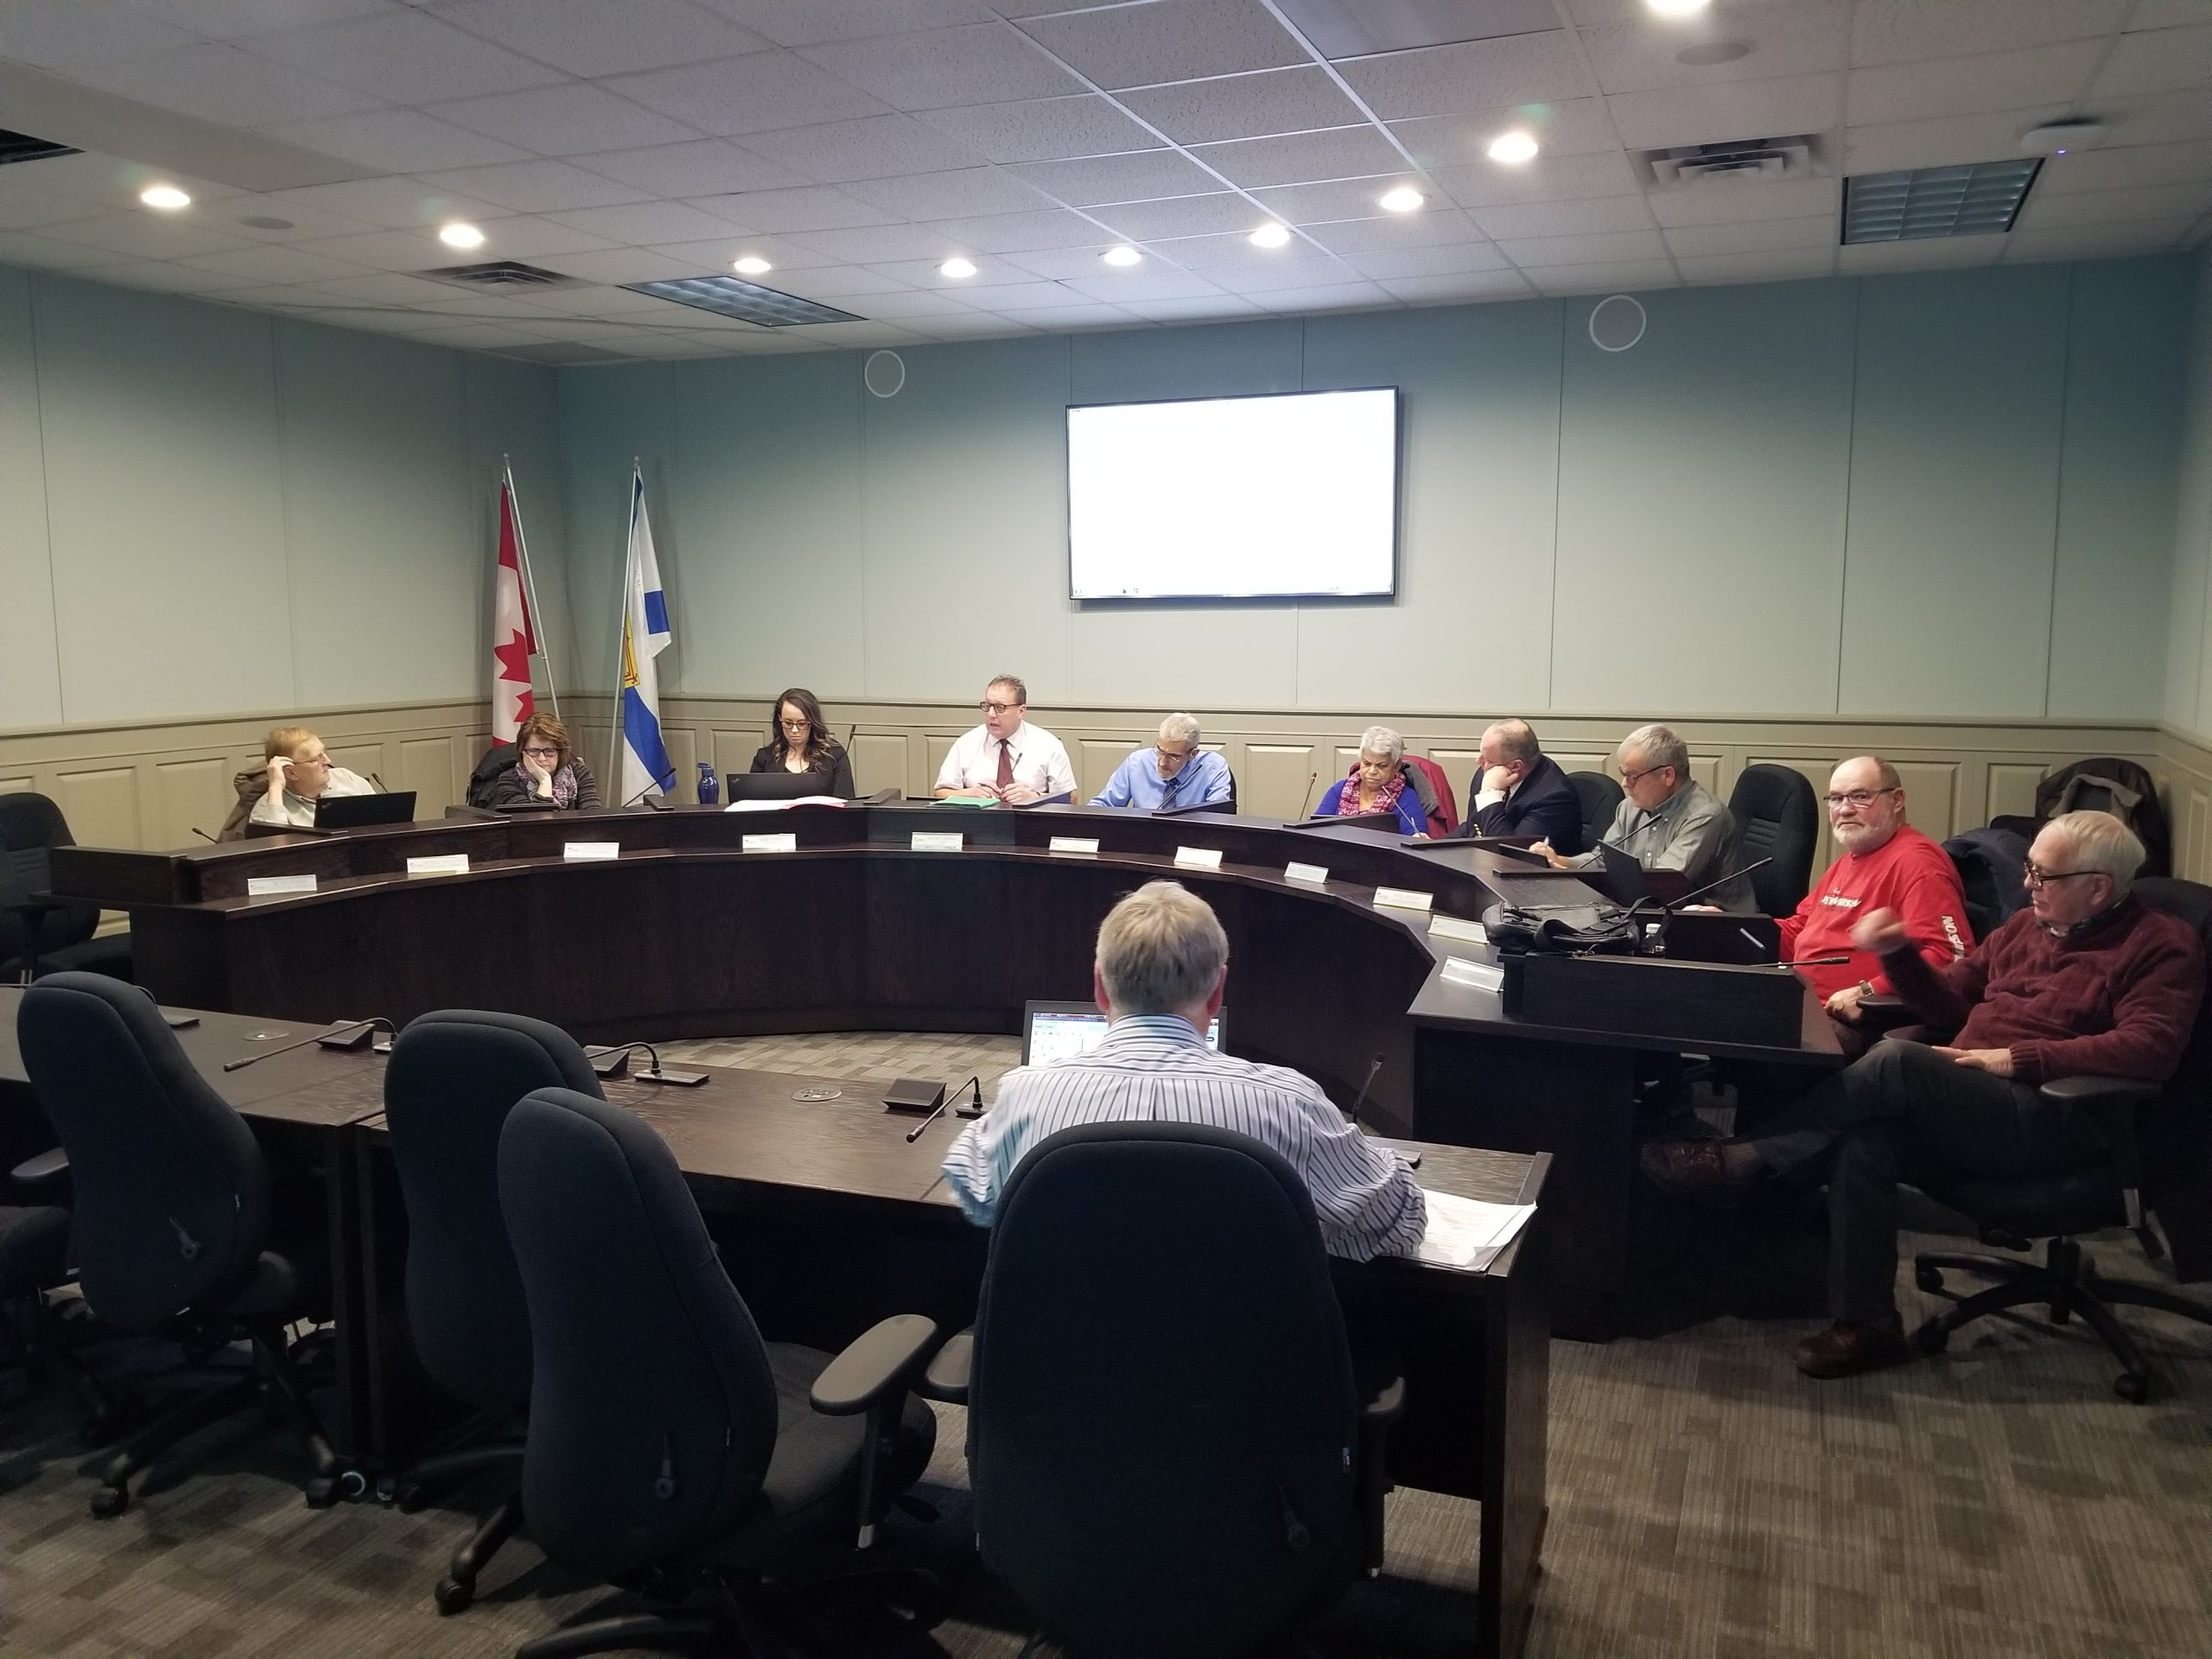 Warden says municipal officials are moving closer to construction of new compost facility